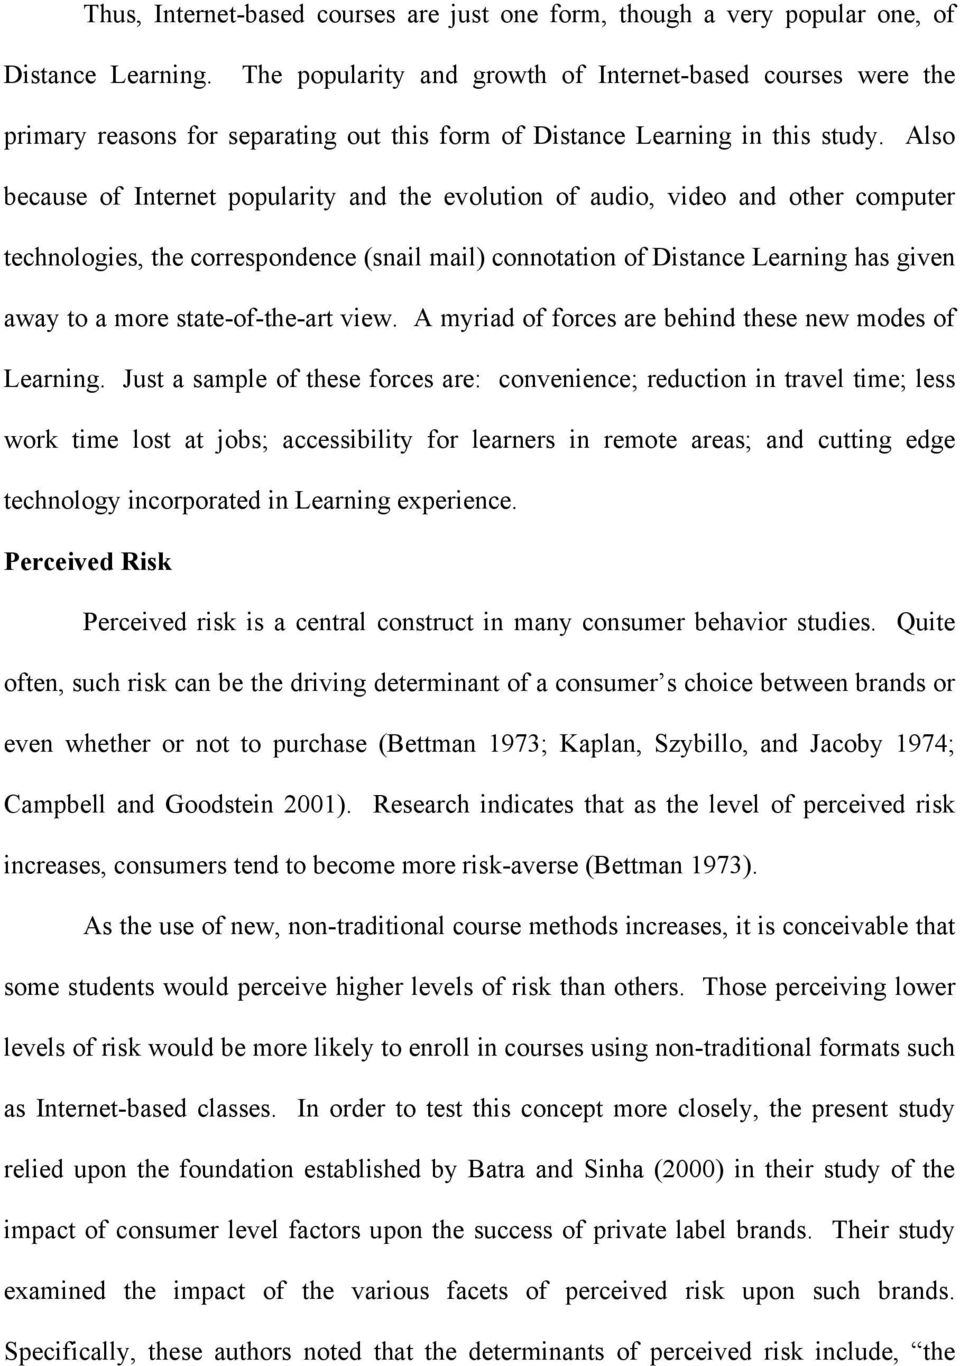 Also because of Internet popularity and the evolution of audio, video and other computer technologies, the correspondence (snail mail) connotation of Distance Learning has given away to a more